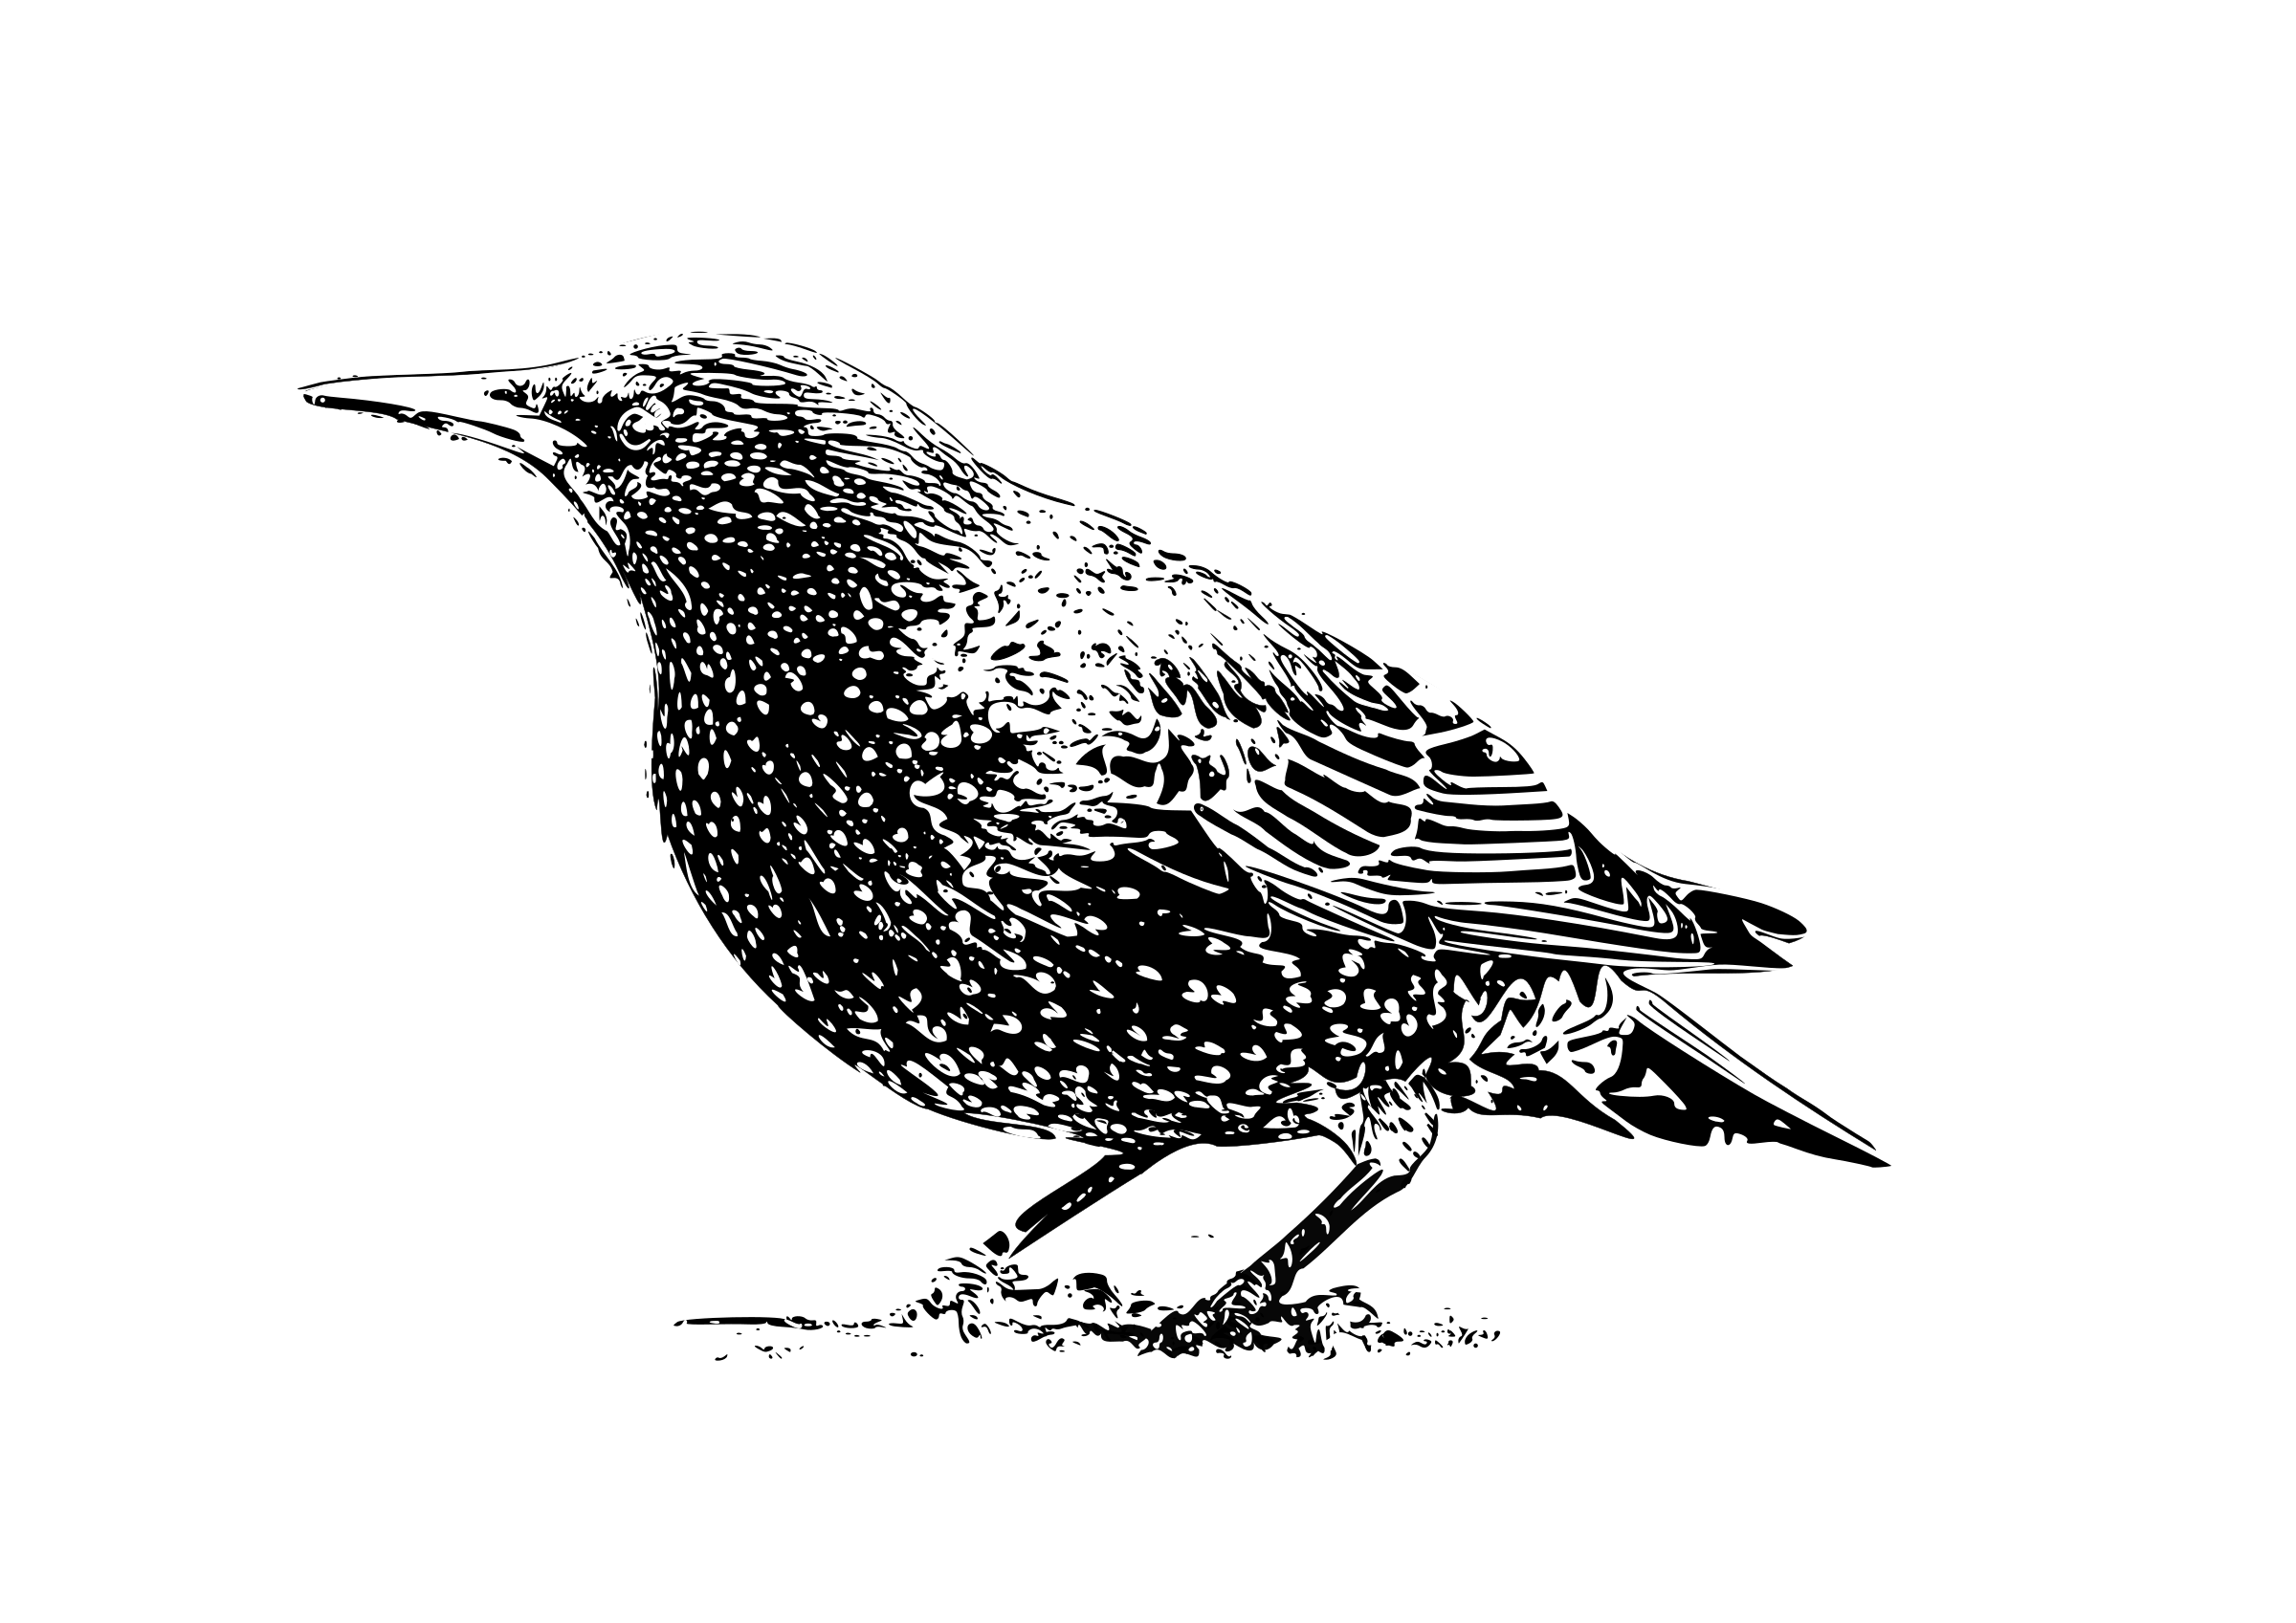 starling b&w by Helm42